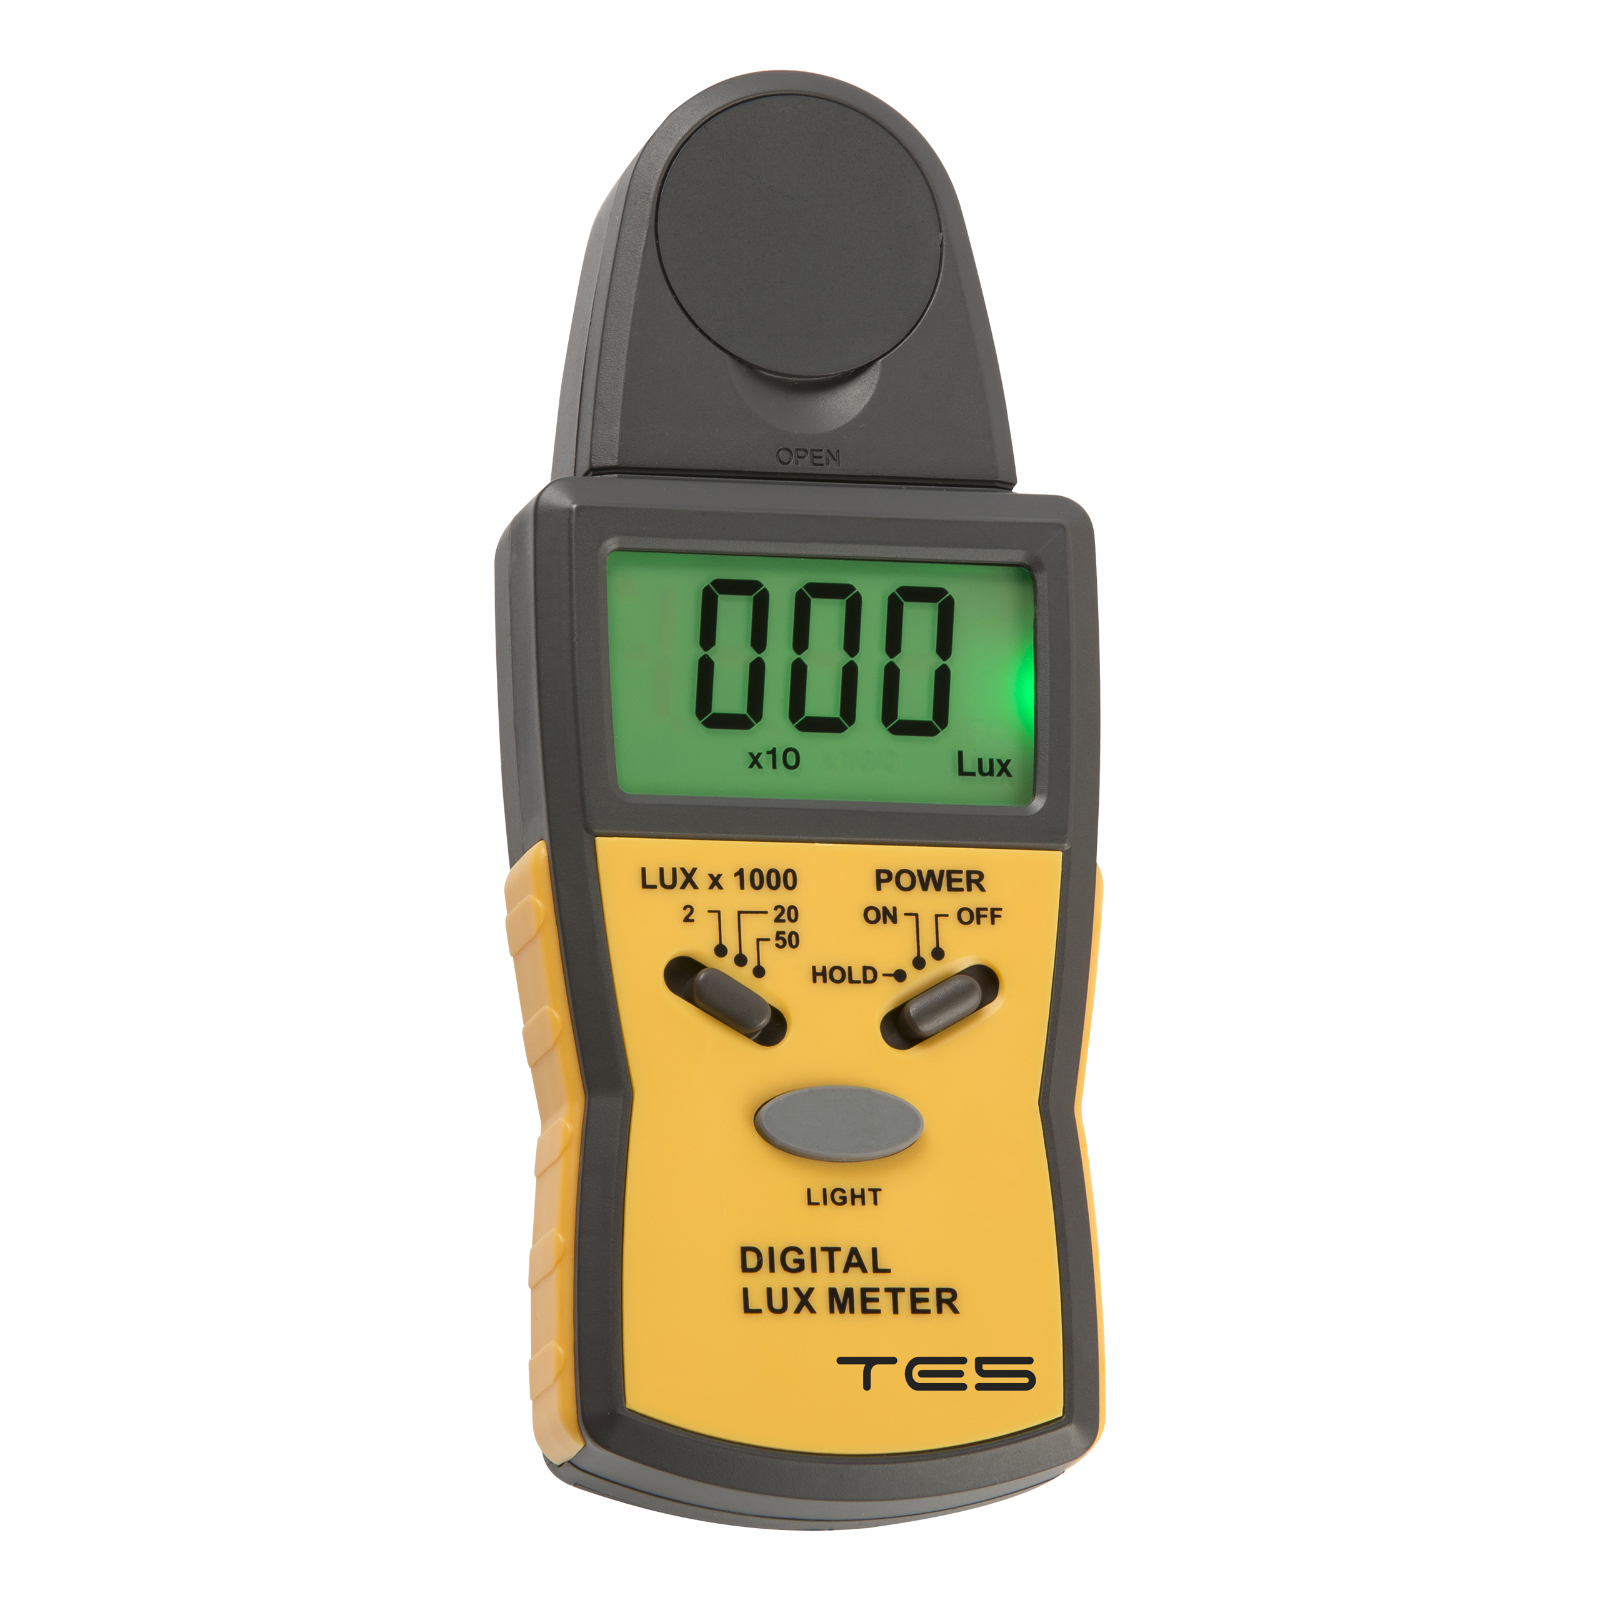 Digital Lux Meter : Knightsbridge te digital lux light meter tester with lcd